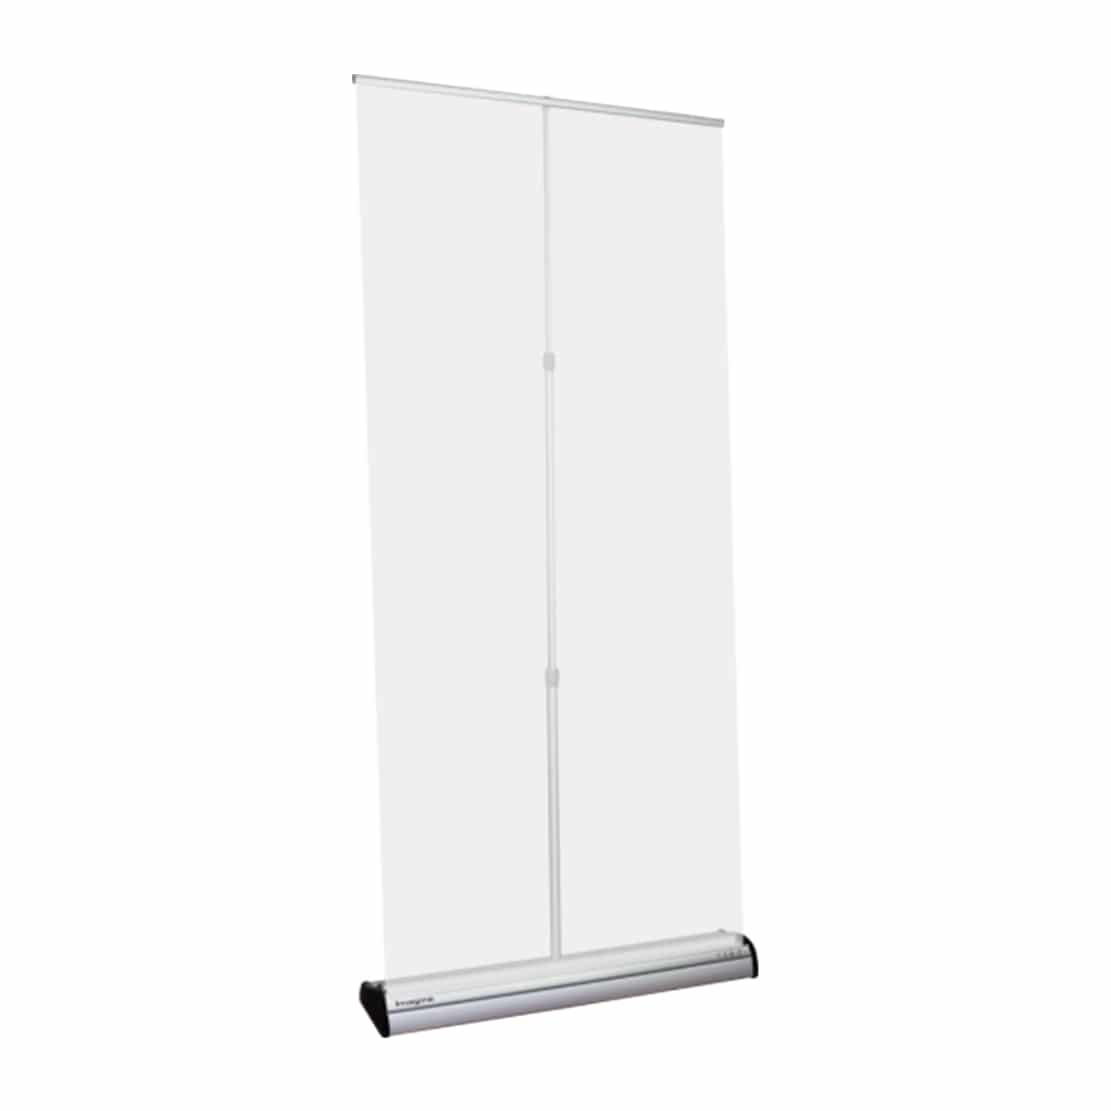 imagine banner stand display showing pole and top bar